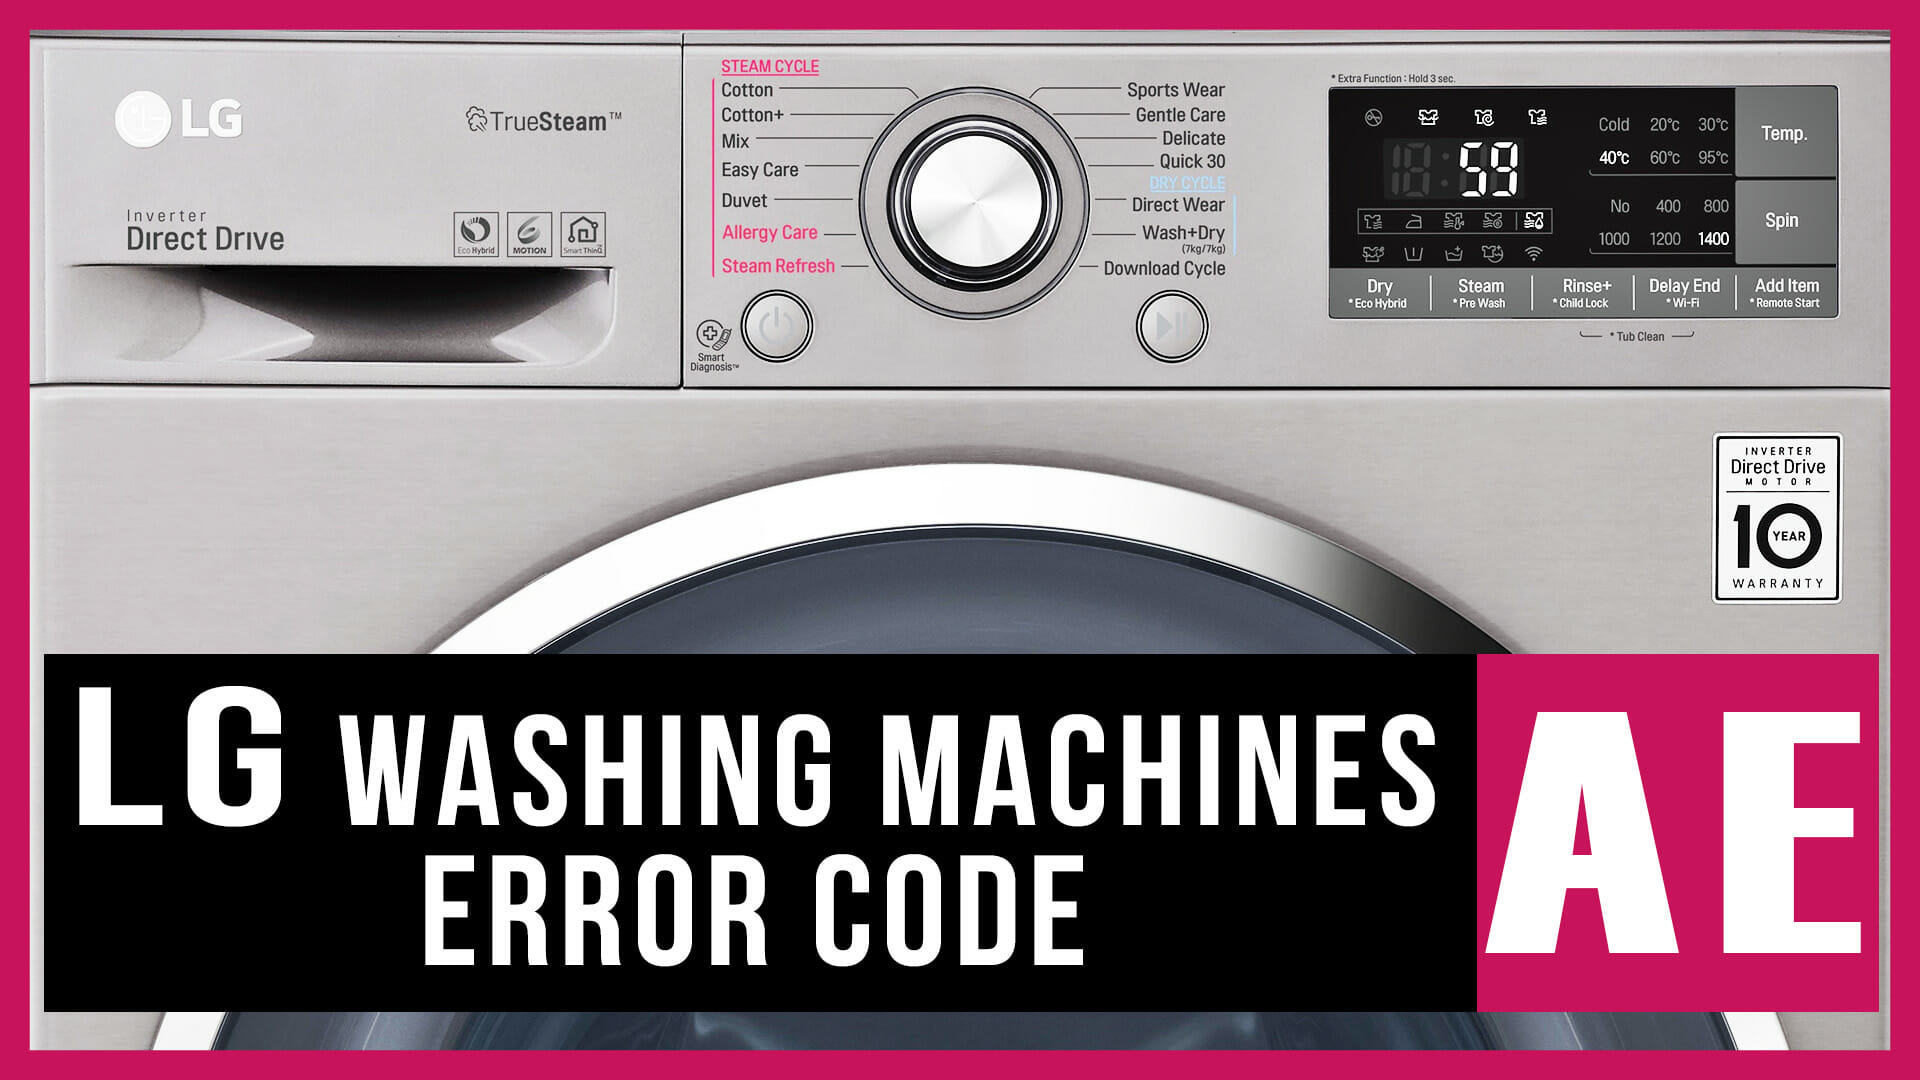 LG washing machines error code AE